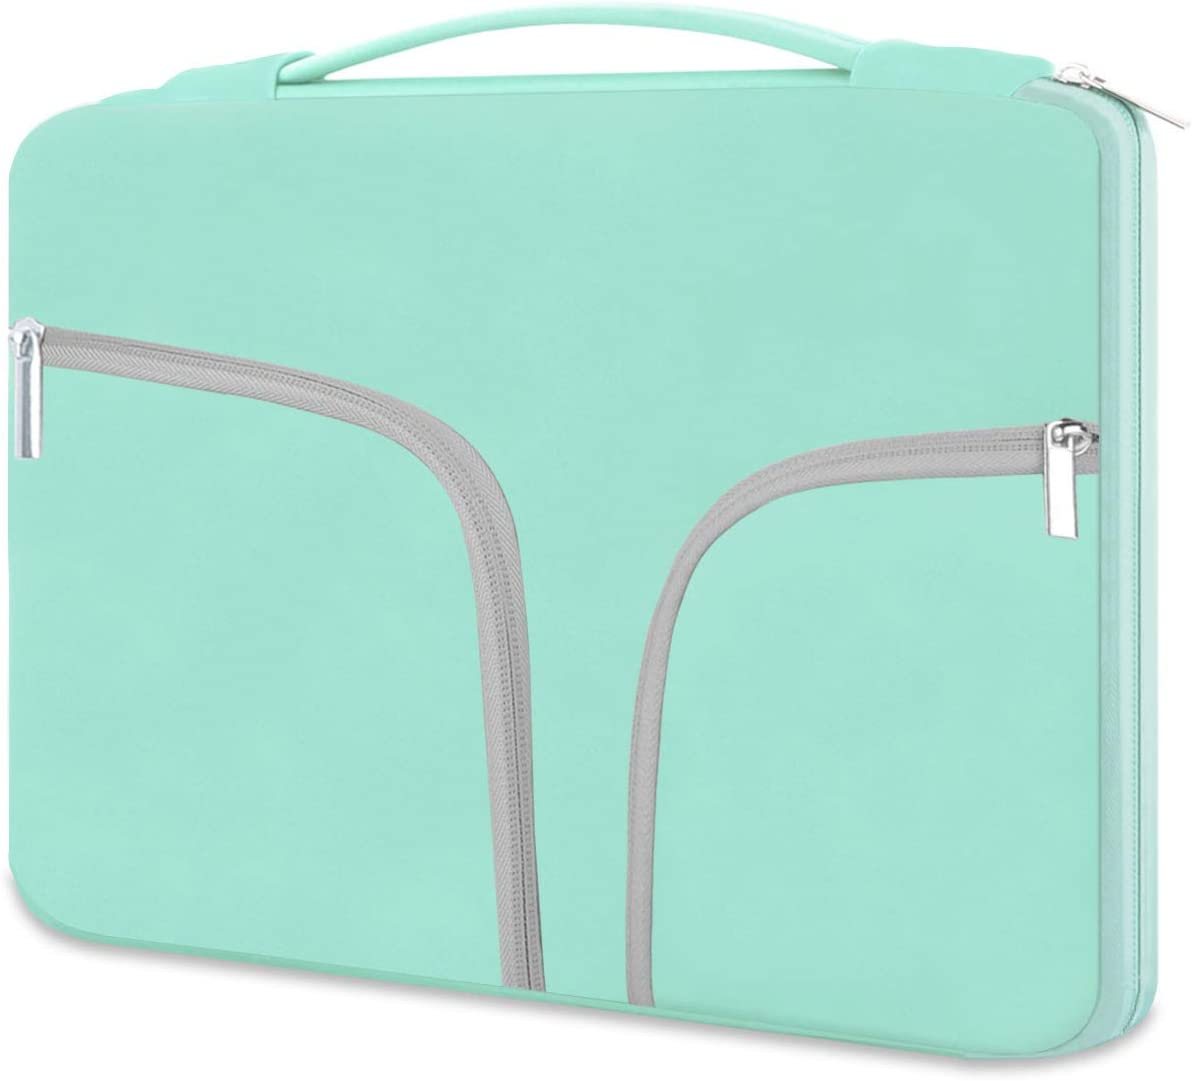 HESTECH Chromebook Case, 11.6-12.5 inch Neoprene Laptop Sleeve Case Bag Handle Compatible with Acer Chromebook r11/HP Stream/Samsung Chromebook/MacBook air 11/ Surface Pro3/Pro4, Mint Green